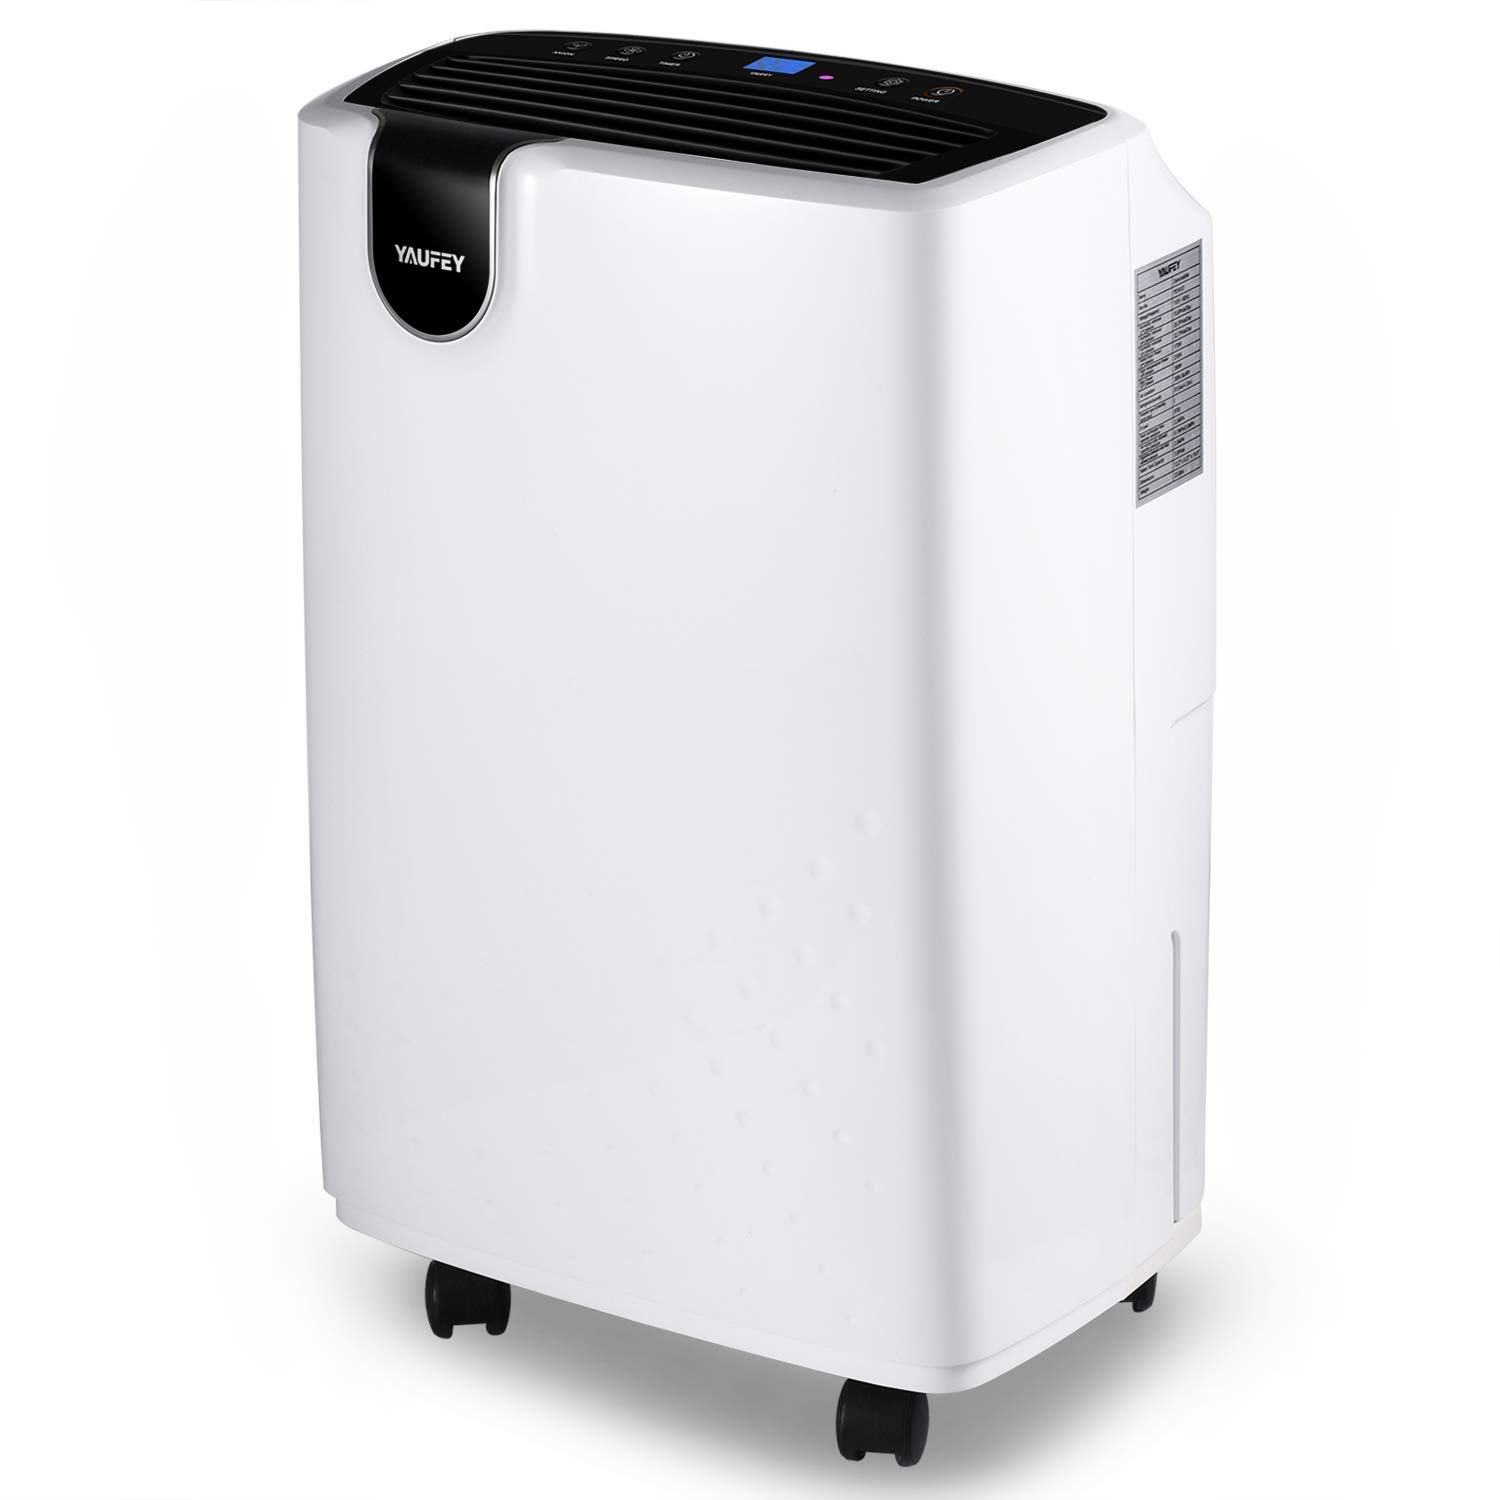 Yaufey 30 Pint Dehumidifier for Home Basements Bedroom Garage, 4 Gallons/Day Working Capacity, with 0.47 Gallon Water Tank, Continuous Drain Hose and Wheel Spaces up to 1500 Sq Ft by yaufey